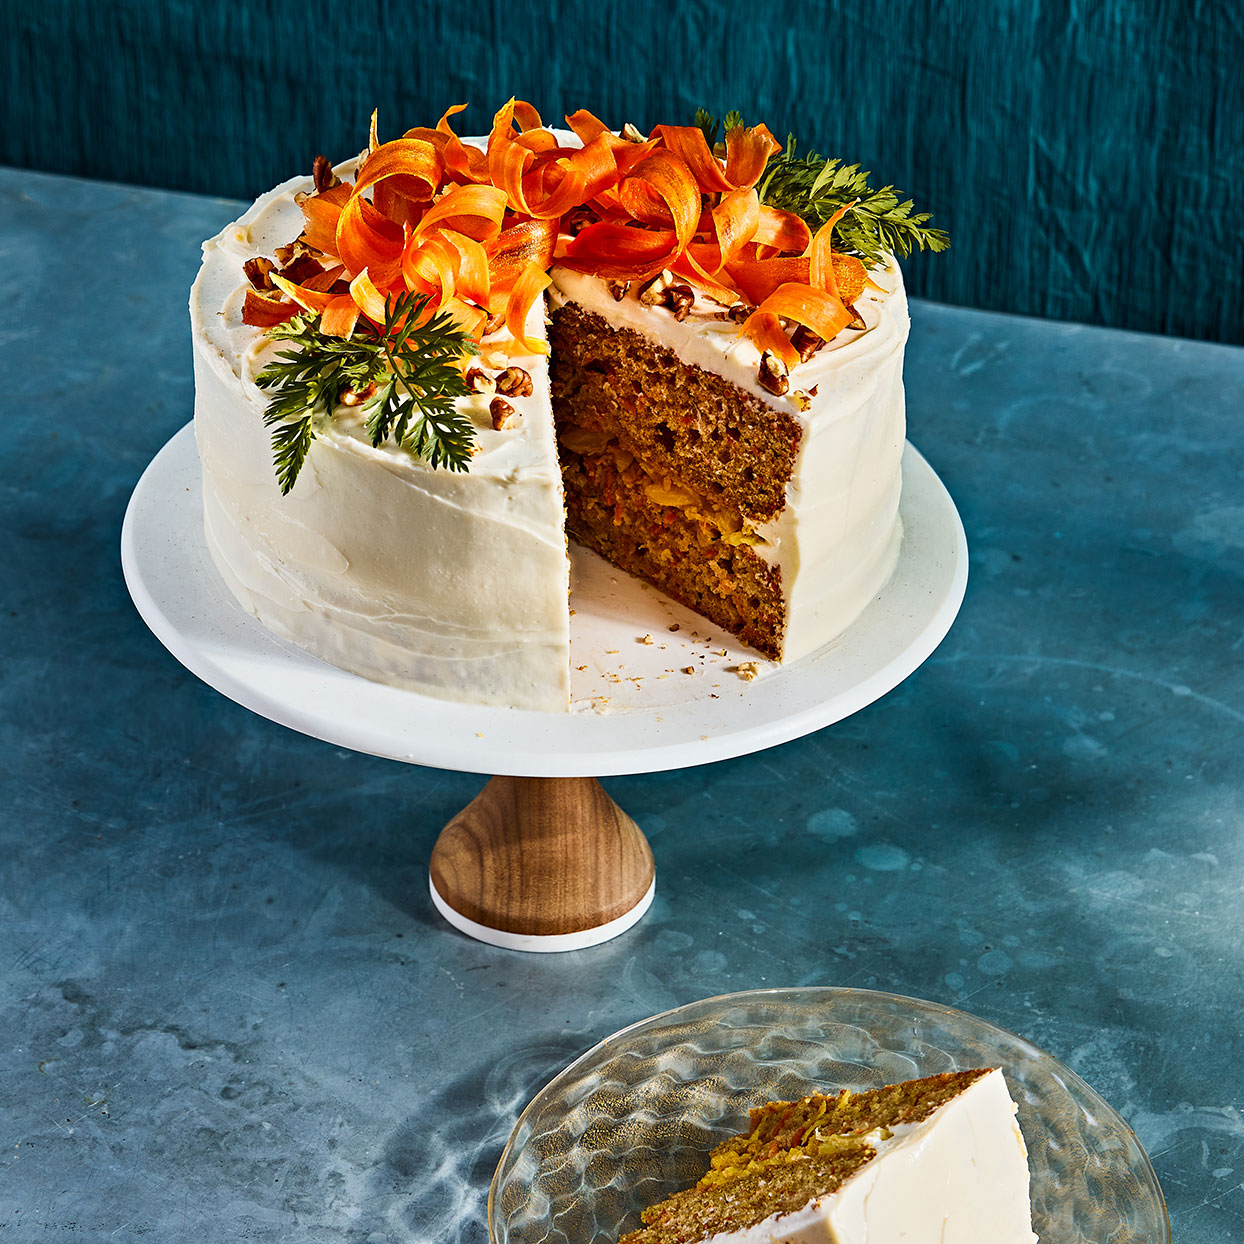 carrot cake on a white cake stand with a slice taken out against a blue background